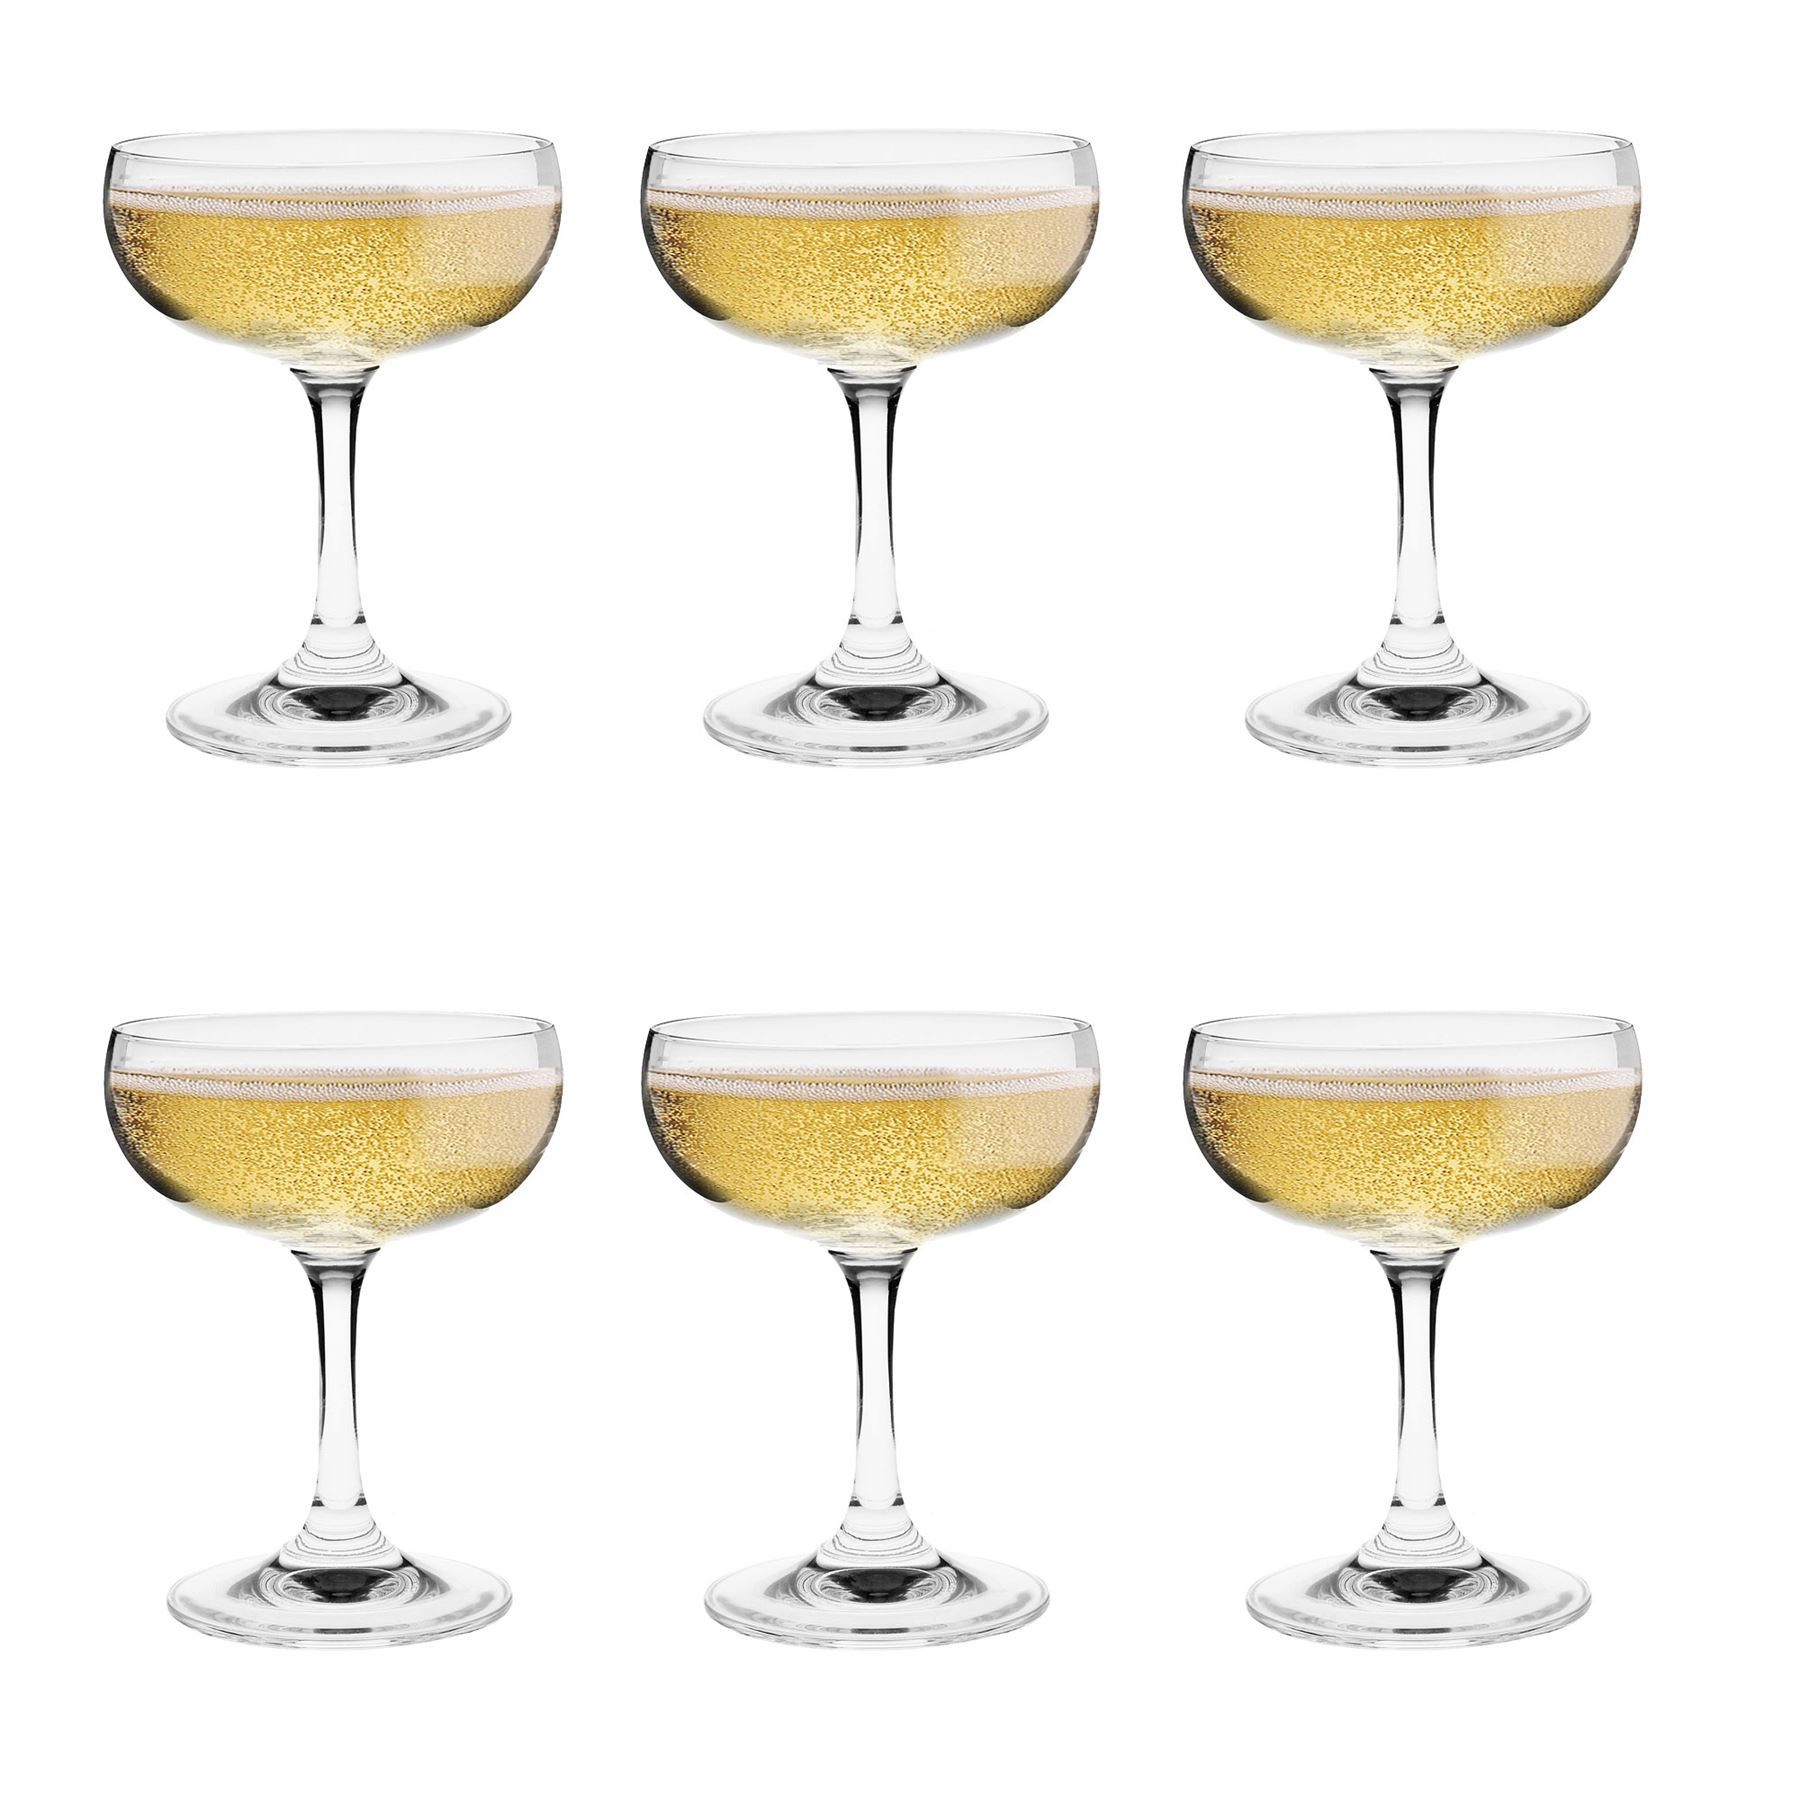 crystal champagne coupe saucers cocktail glasses gift boxed x6 180ml 5055415187292 ebay. Black Bedroom Furniture Sets. Home Design Ideas